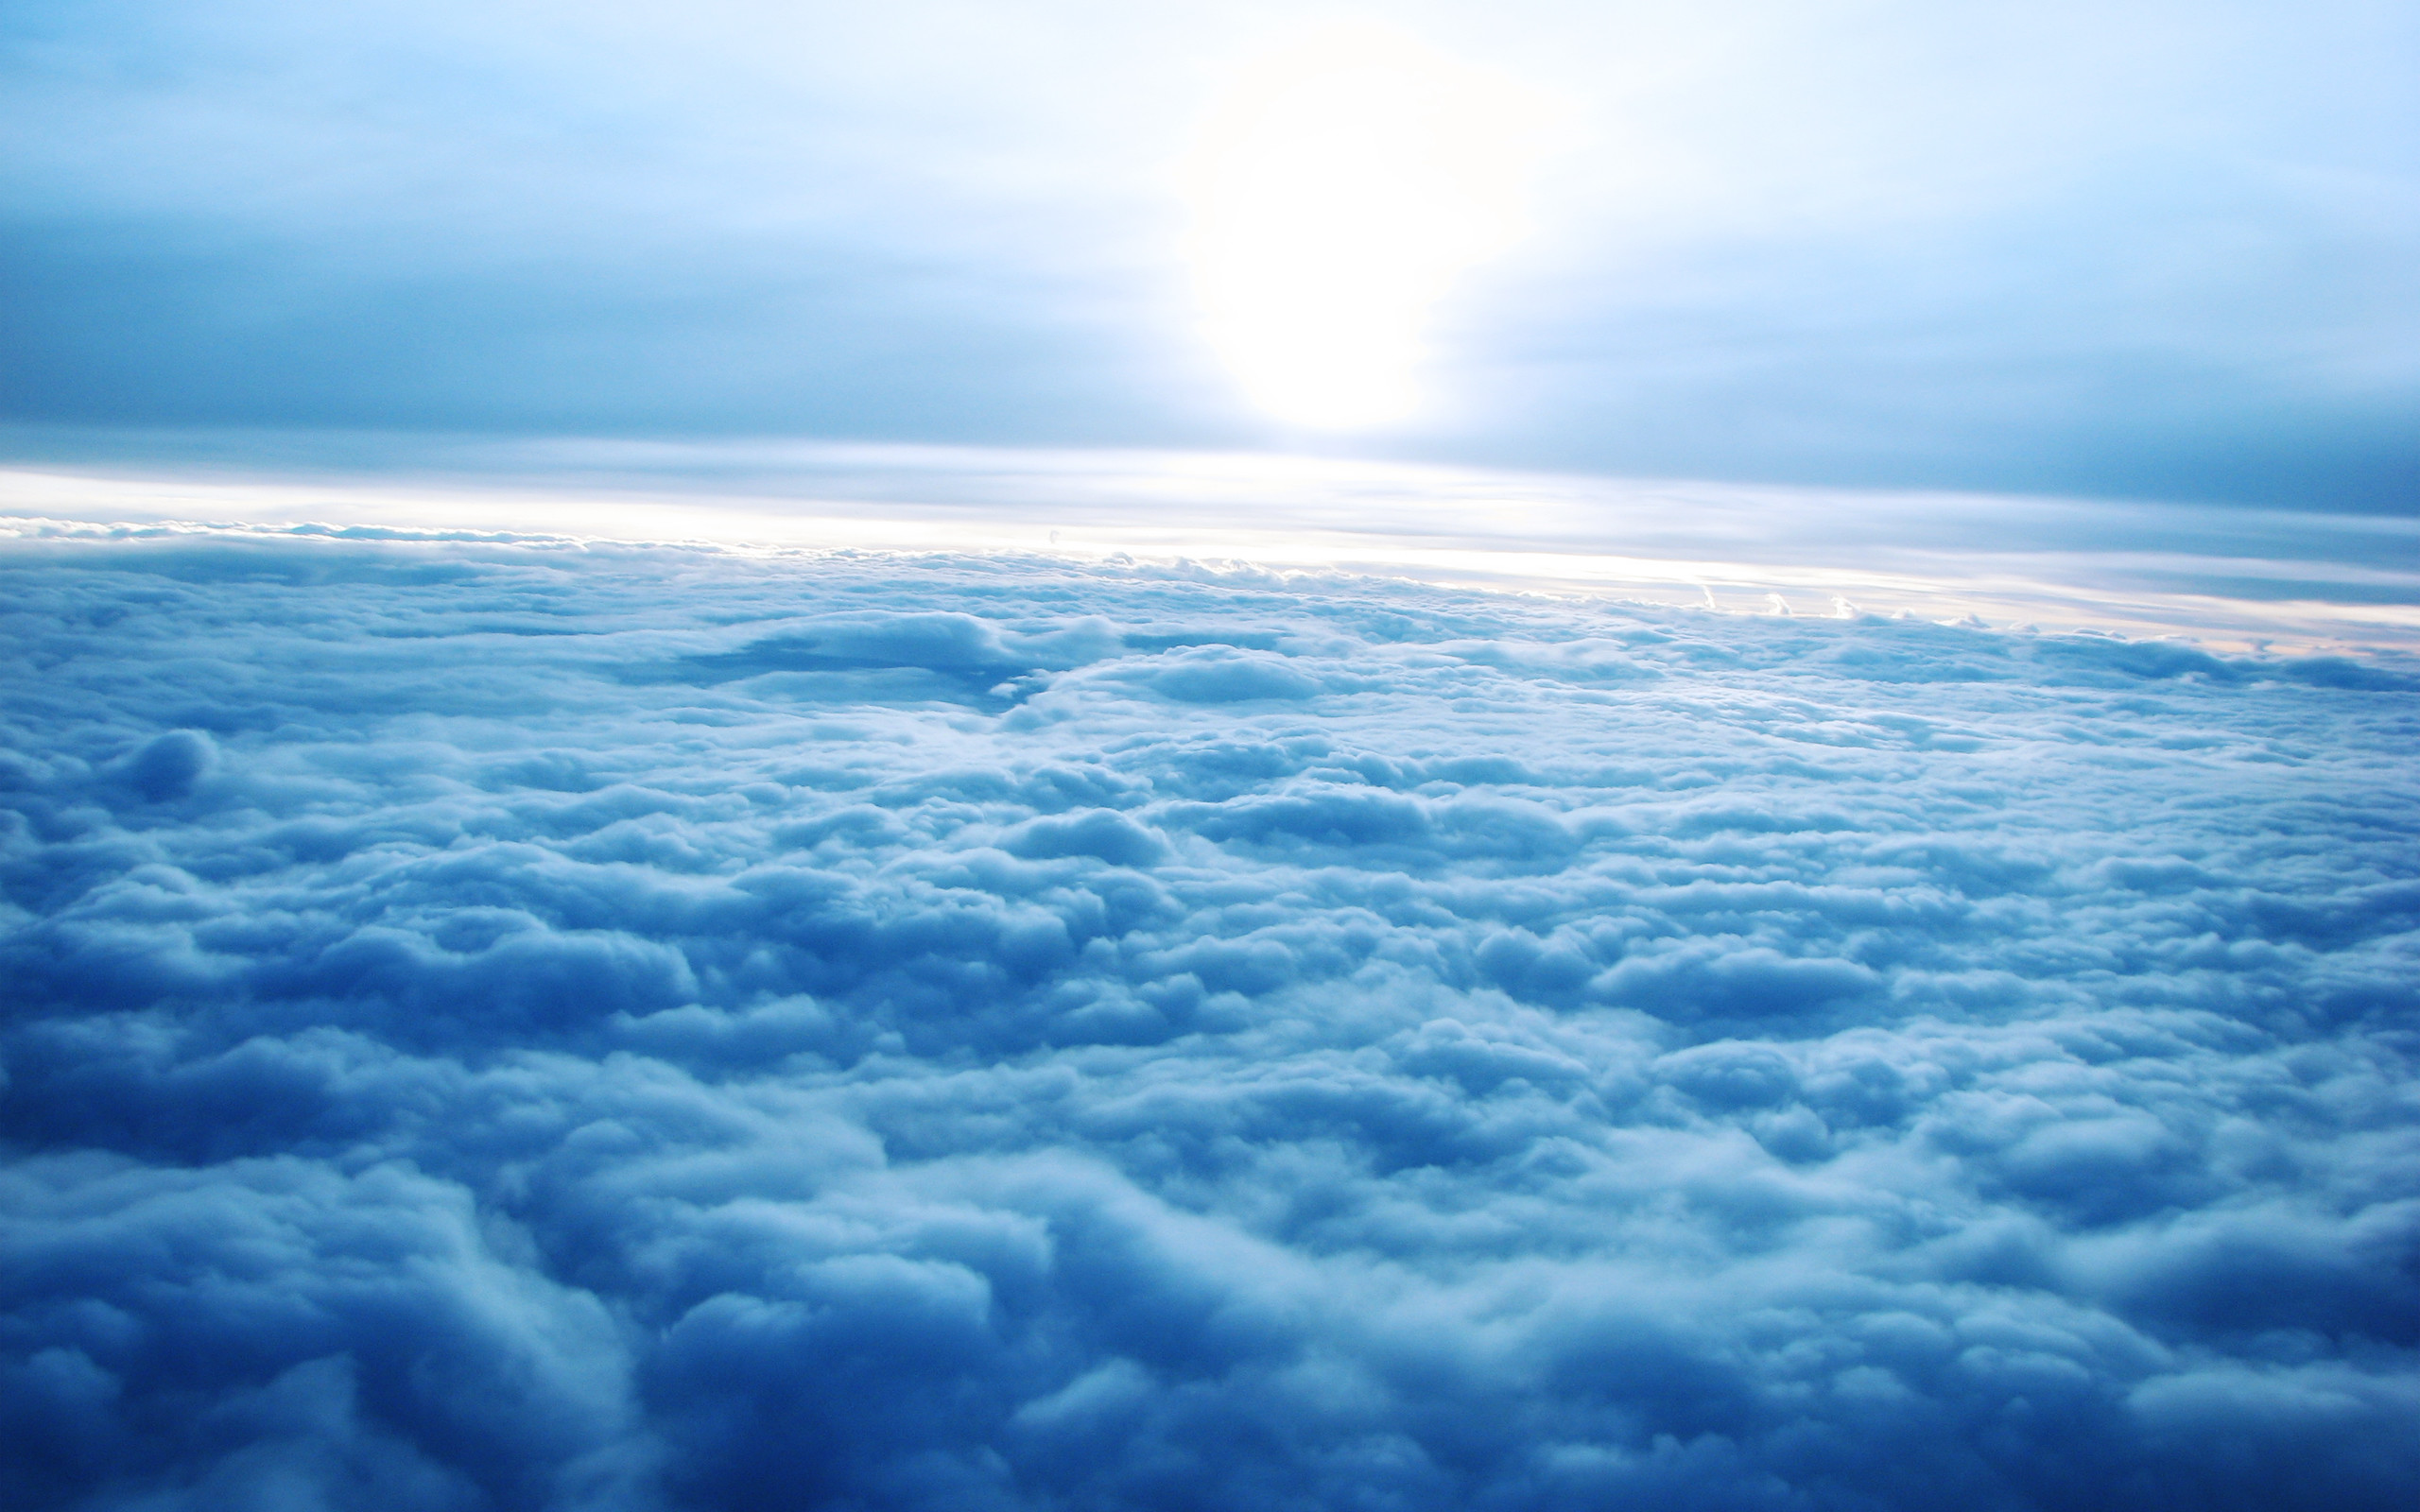 Above The Blue Sky HD wallpaper download in 2560×1600, 1920×1200,  1680×1050, 1440×900,